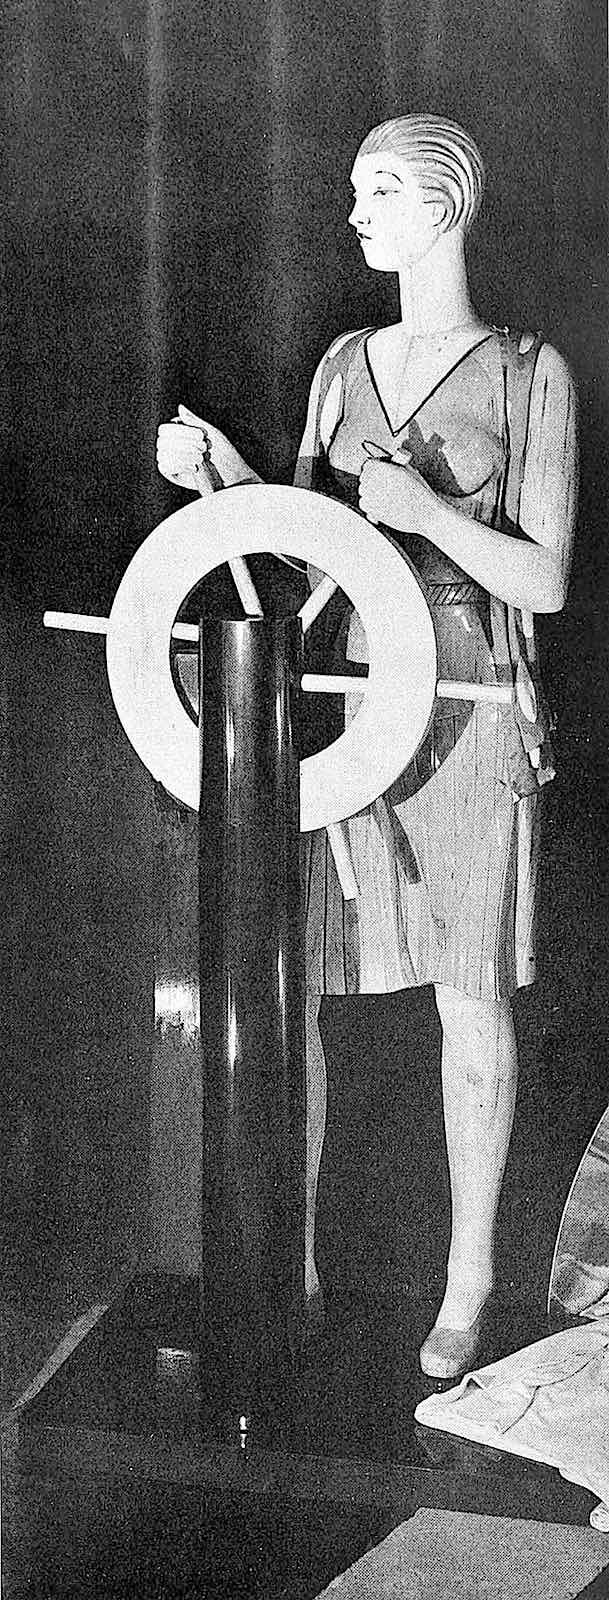 a 1927 mannequin at a ships wheel